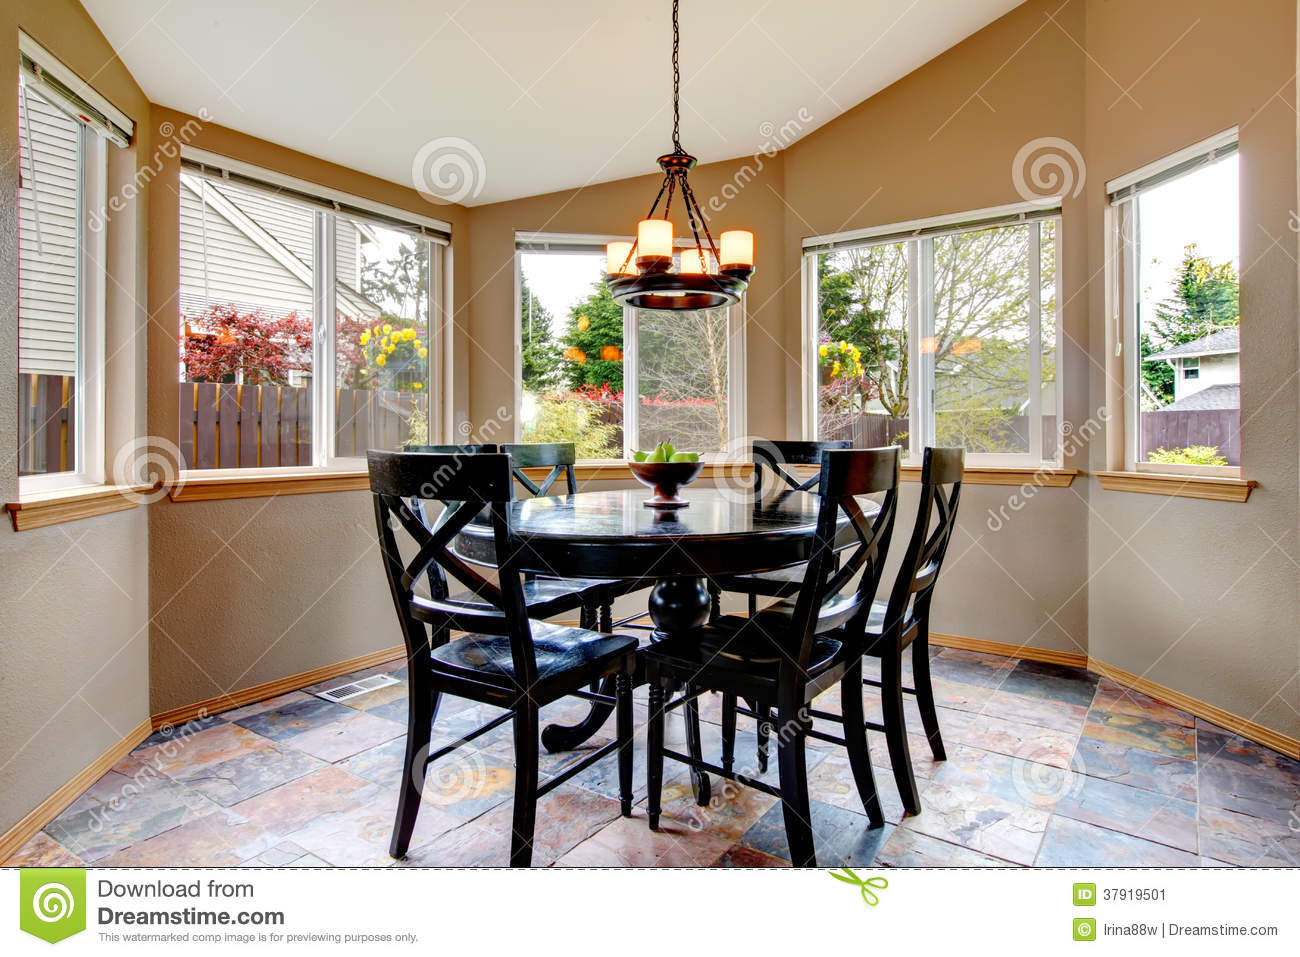 Beighe Round Corner Dining Room Stock Image Image Of Idea Apartment 37919501